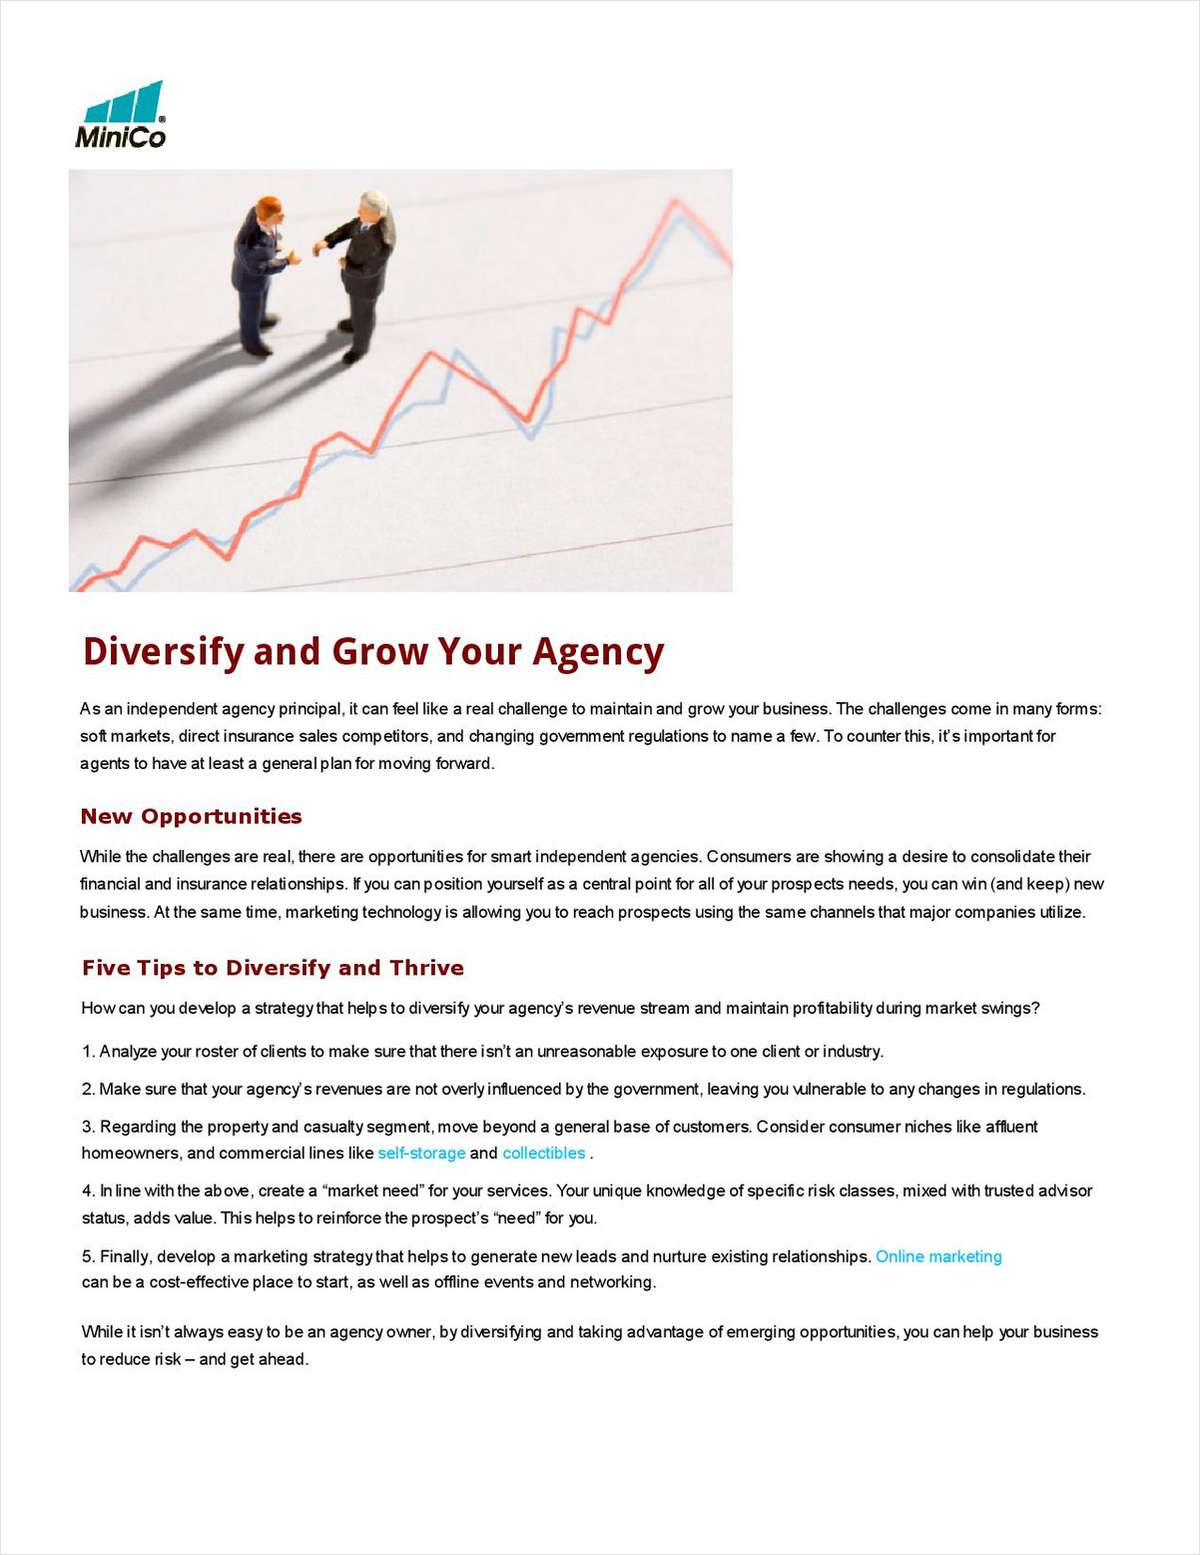 Diversify and Grow Your Agency